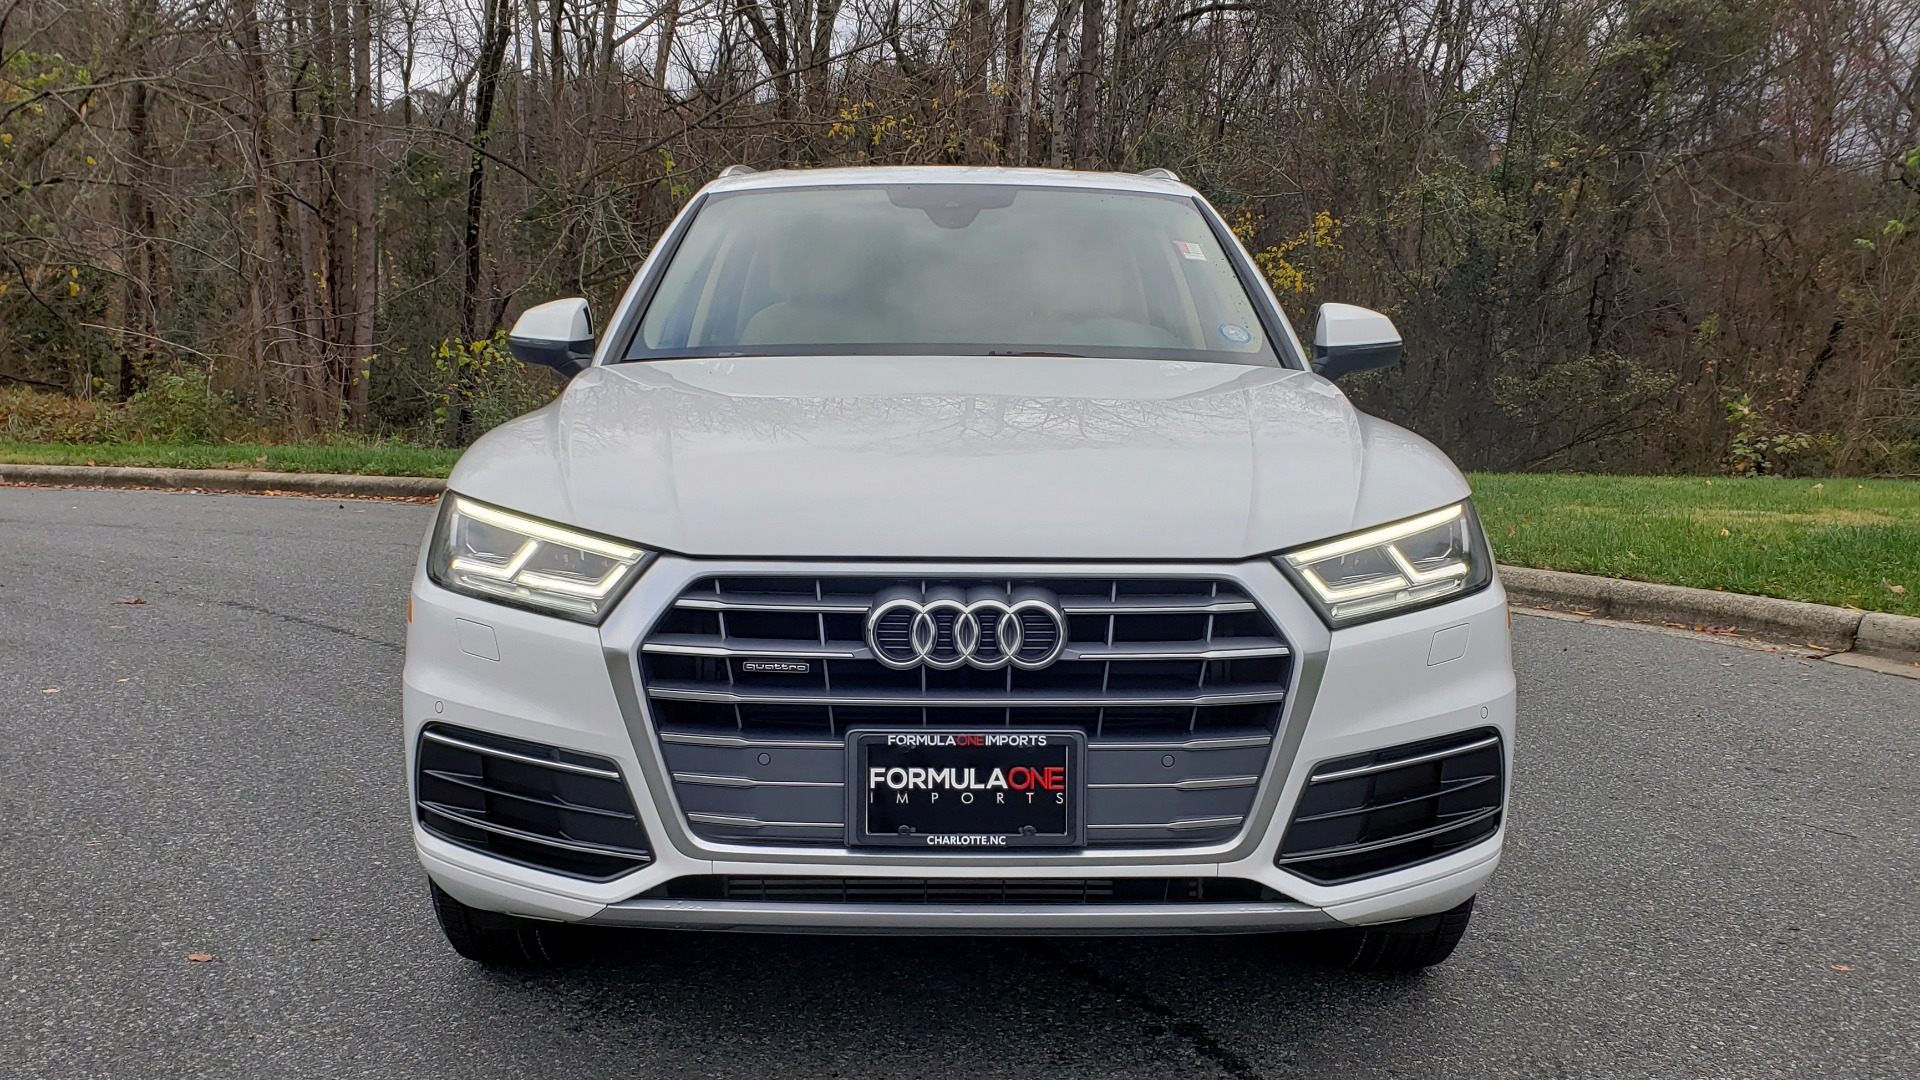 Used 2018 Audi Q5 PREMIUM PLUS / NAV PKG / SUNROOF / CLD WTHR / REARVIEW for sale Sold at Formula Imports in Charlotte NC 28227 20